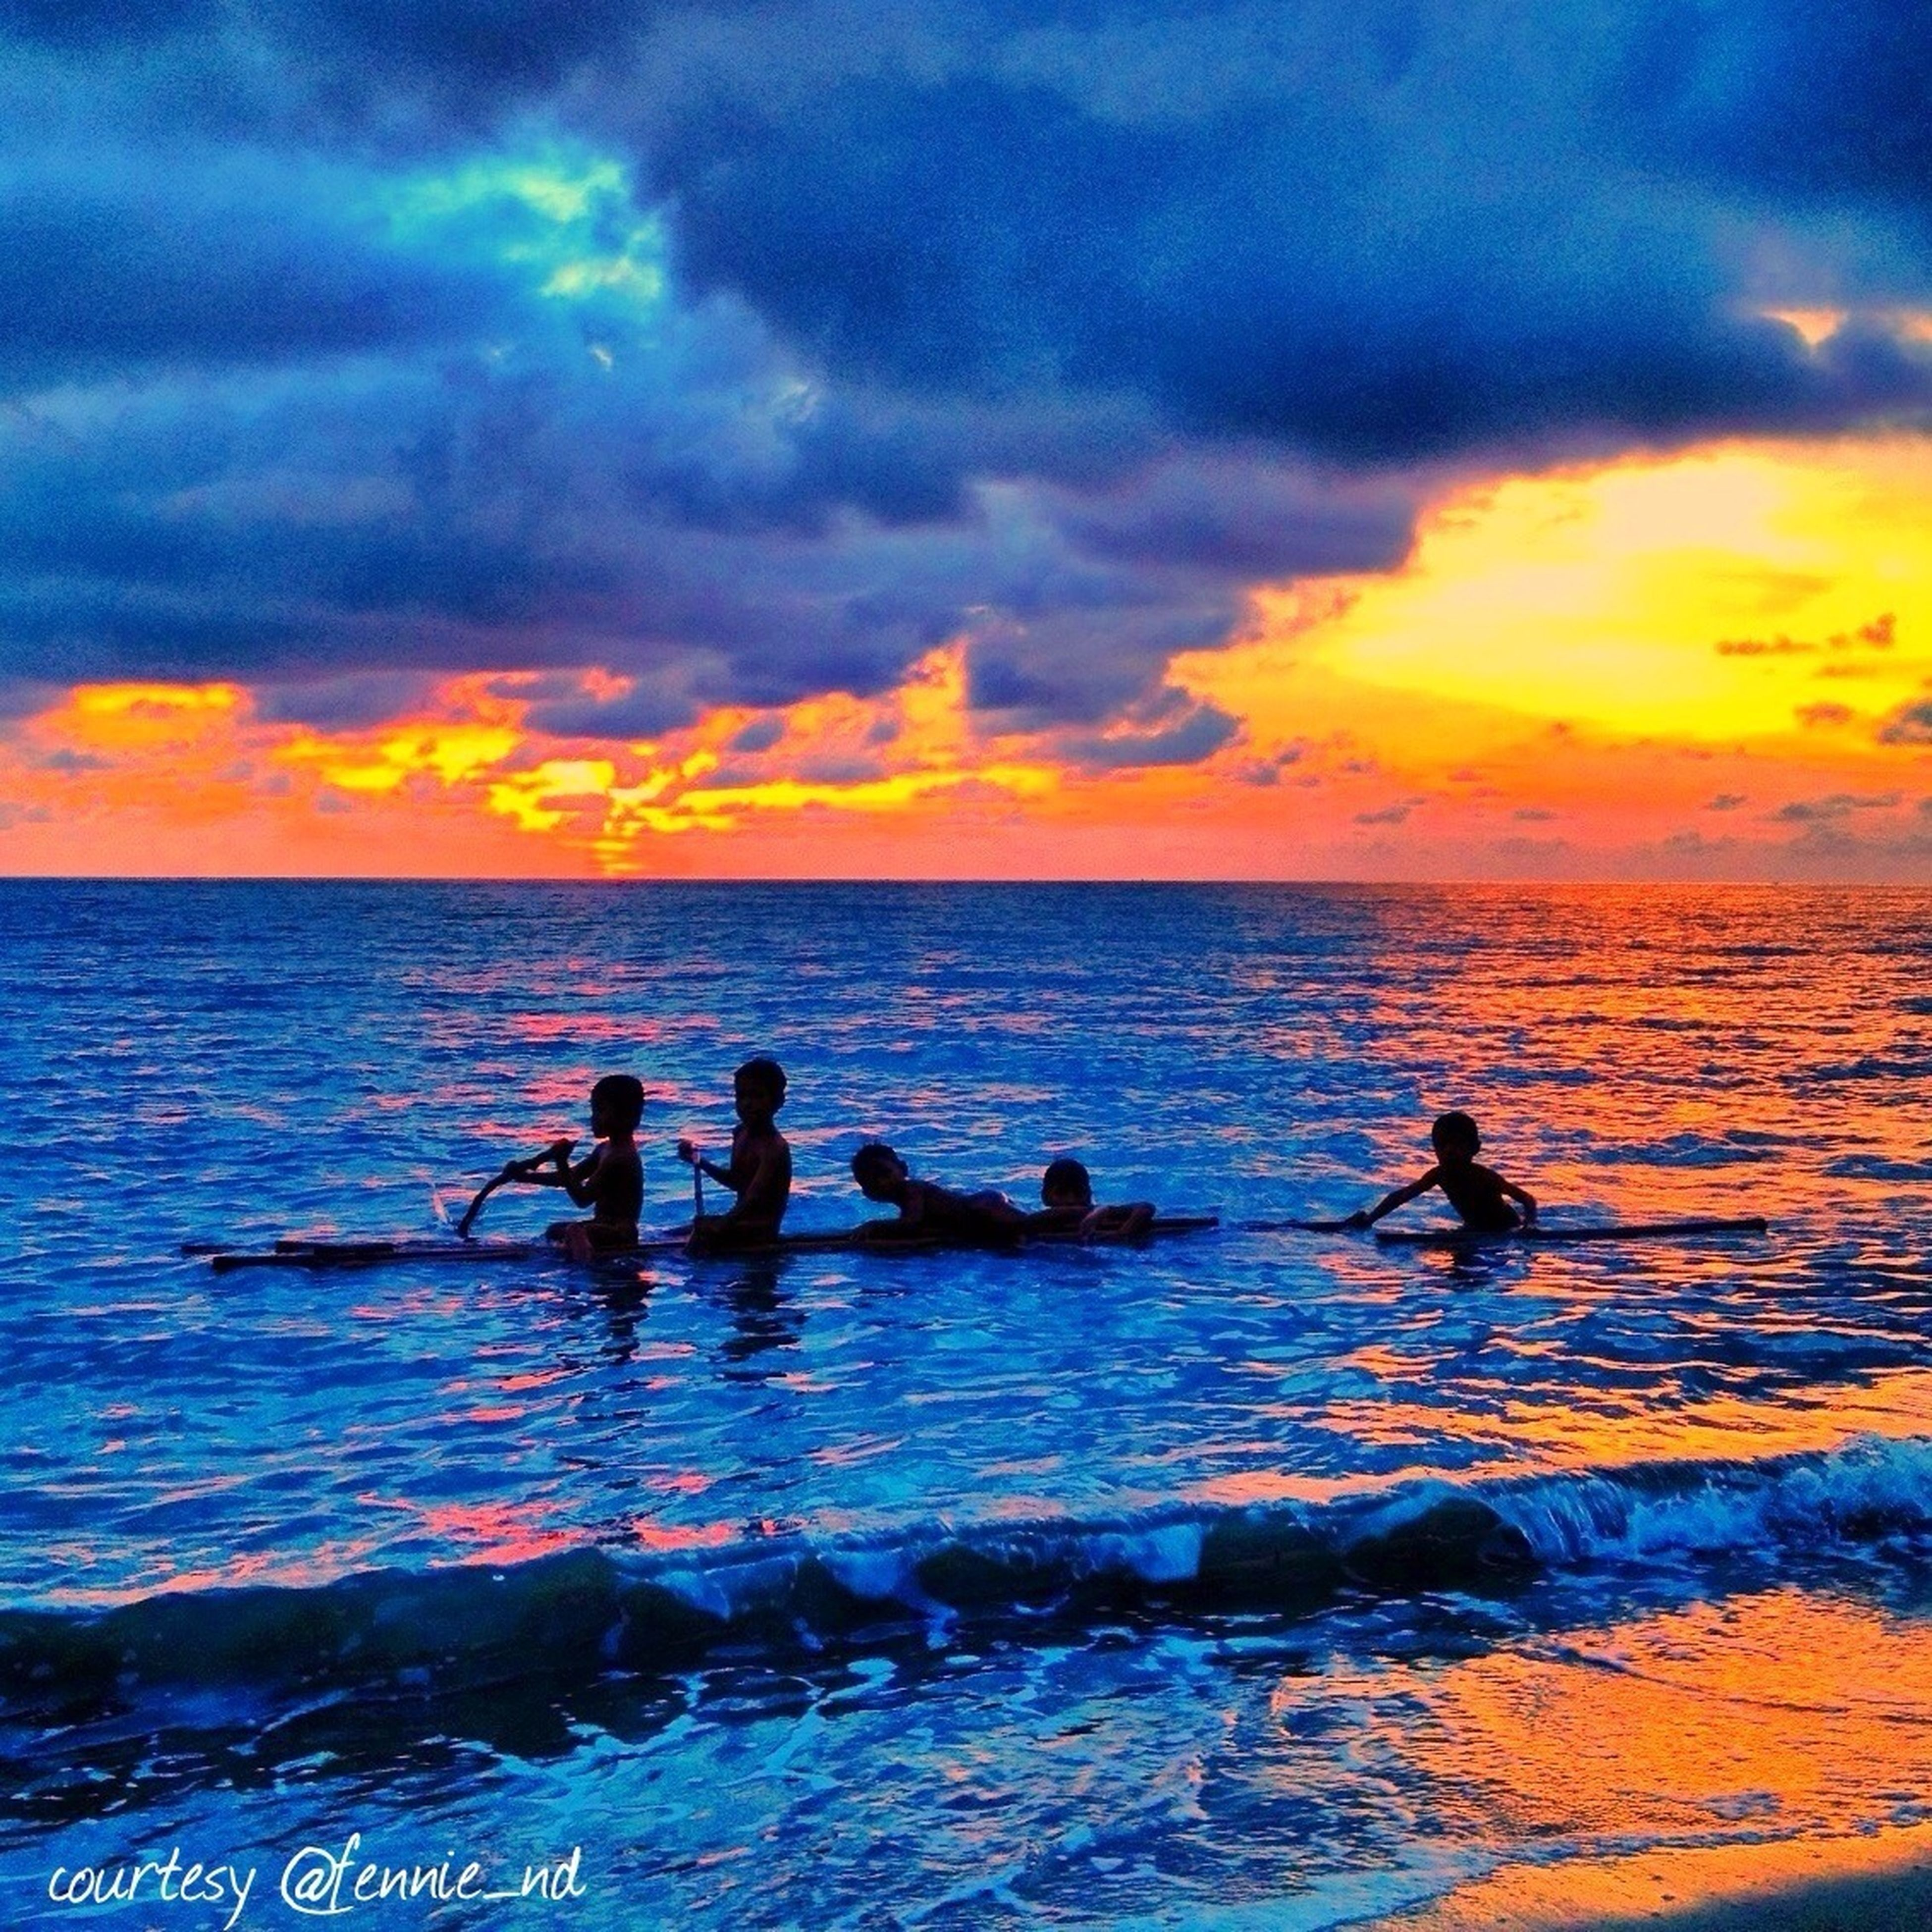 sea, water, sky, sunset, horizon over water, leisure activity, cloud - sky, lifestyles, men, silhouette, scenics, beauty in nature, beach, vacations, nature, tranquil scene, cloudy, tranquility